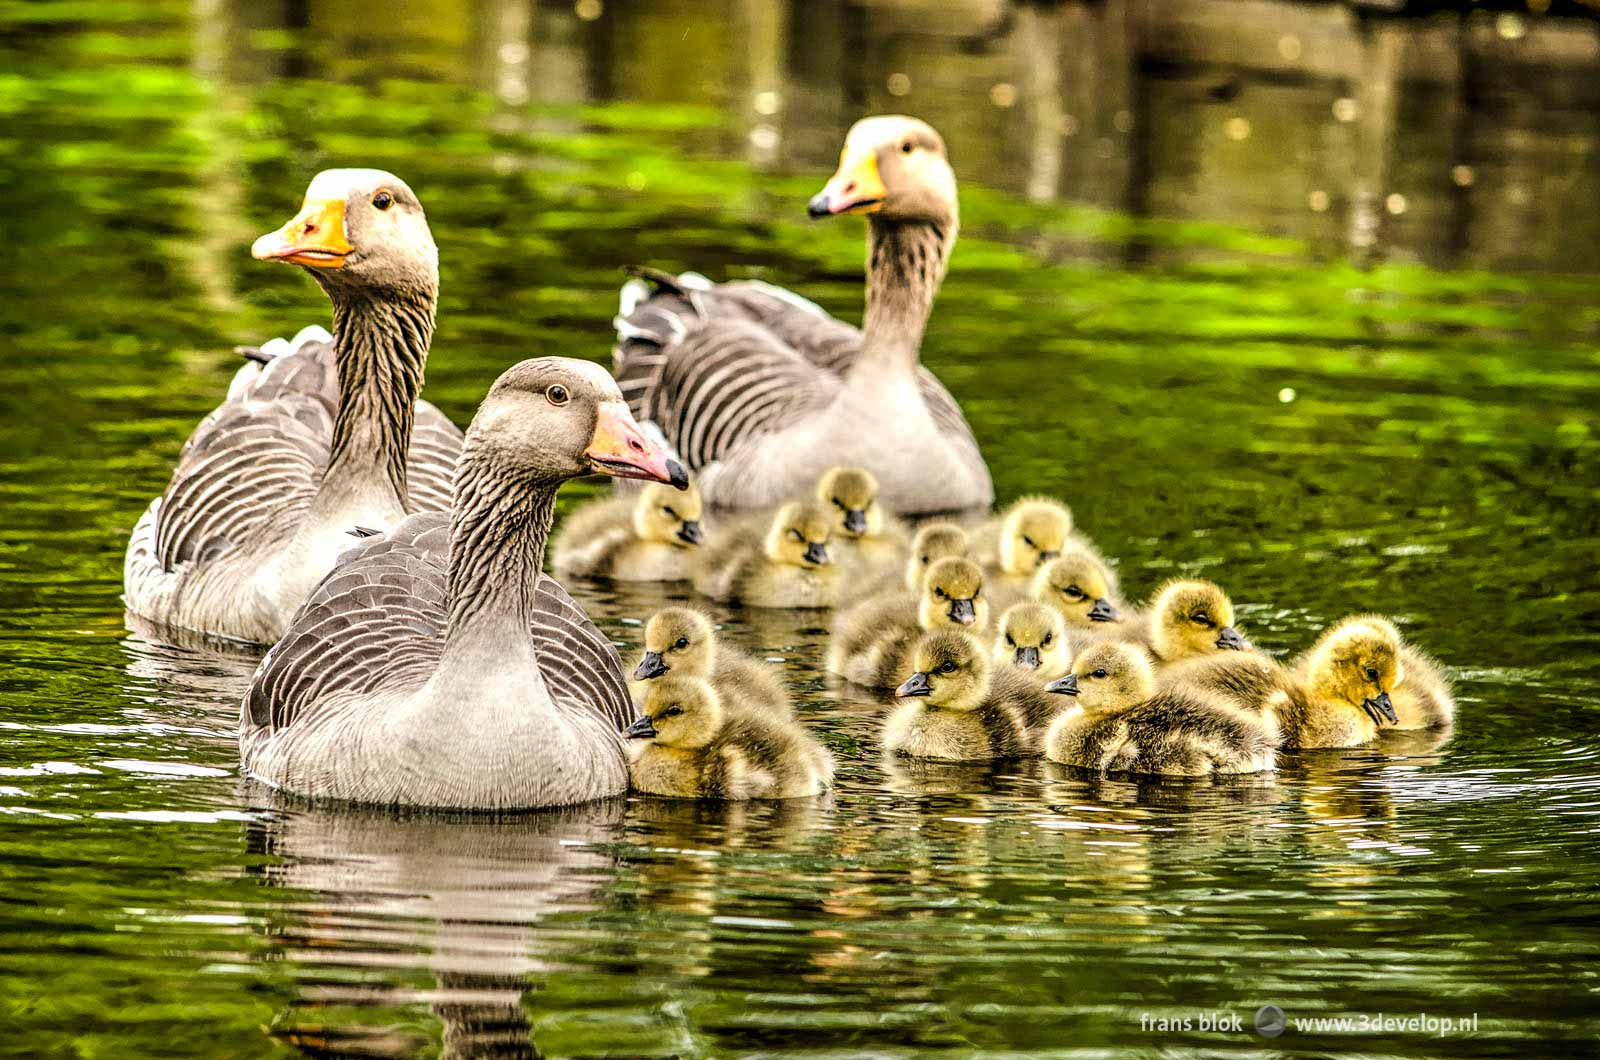 A class of geese, three adults and fifteen kids, in springtime in a canal in Kralingen, Rotterdam